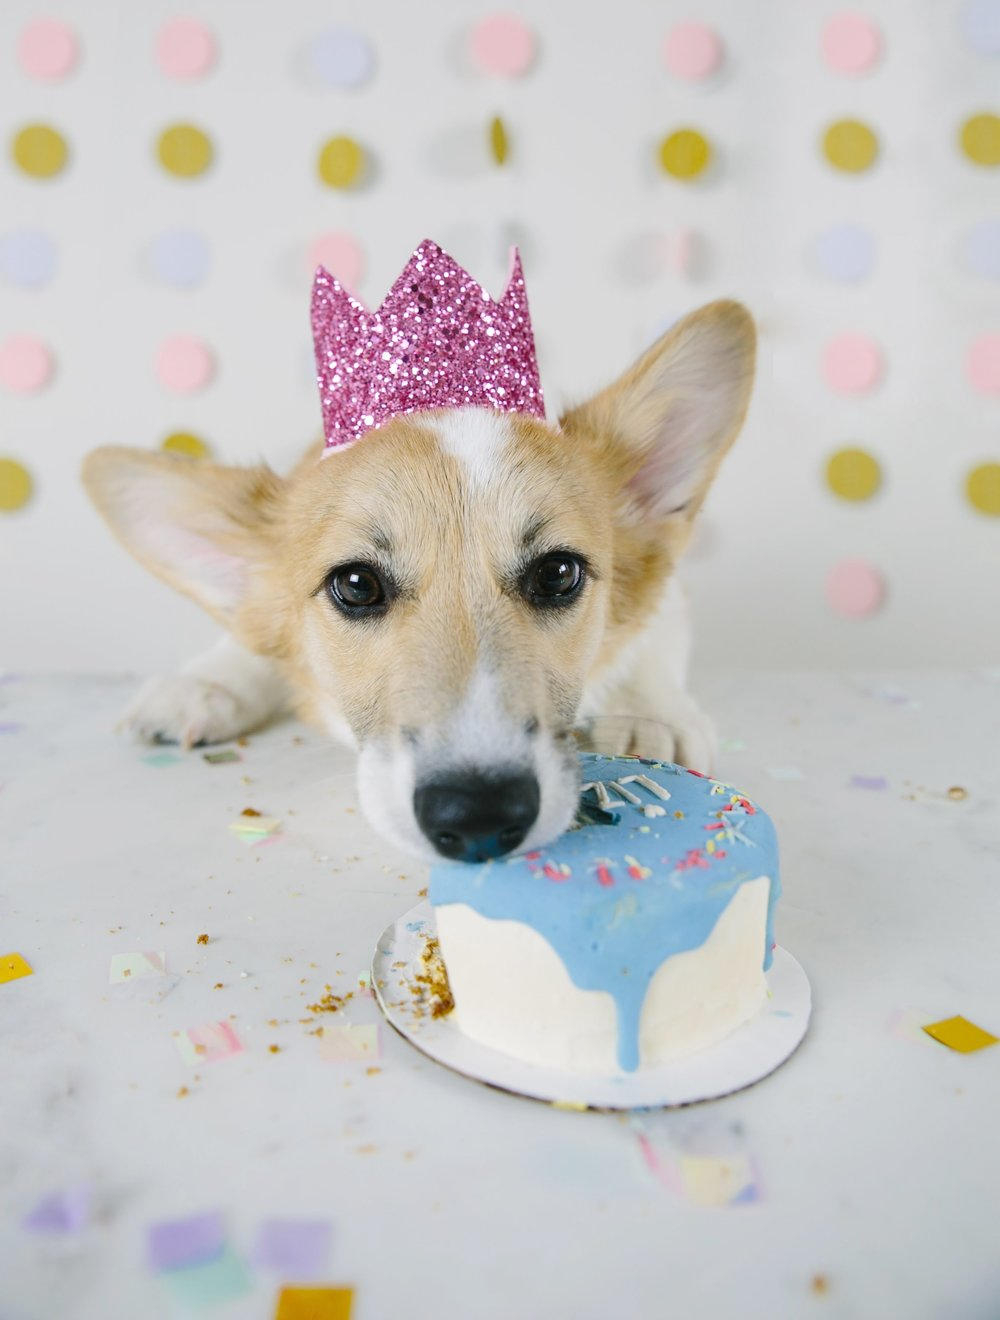 Puppy Half Birthday Party With Dog Cake And Hats